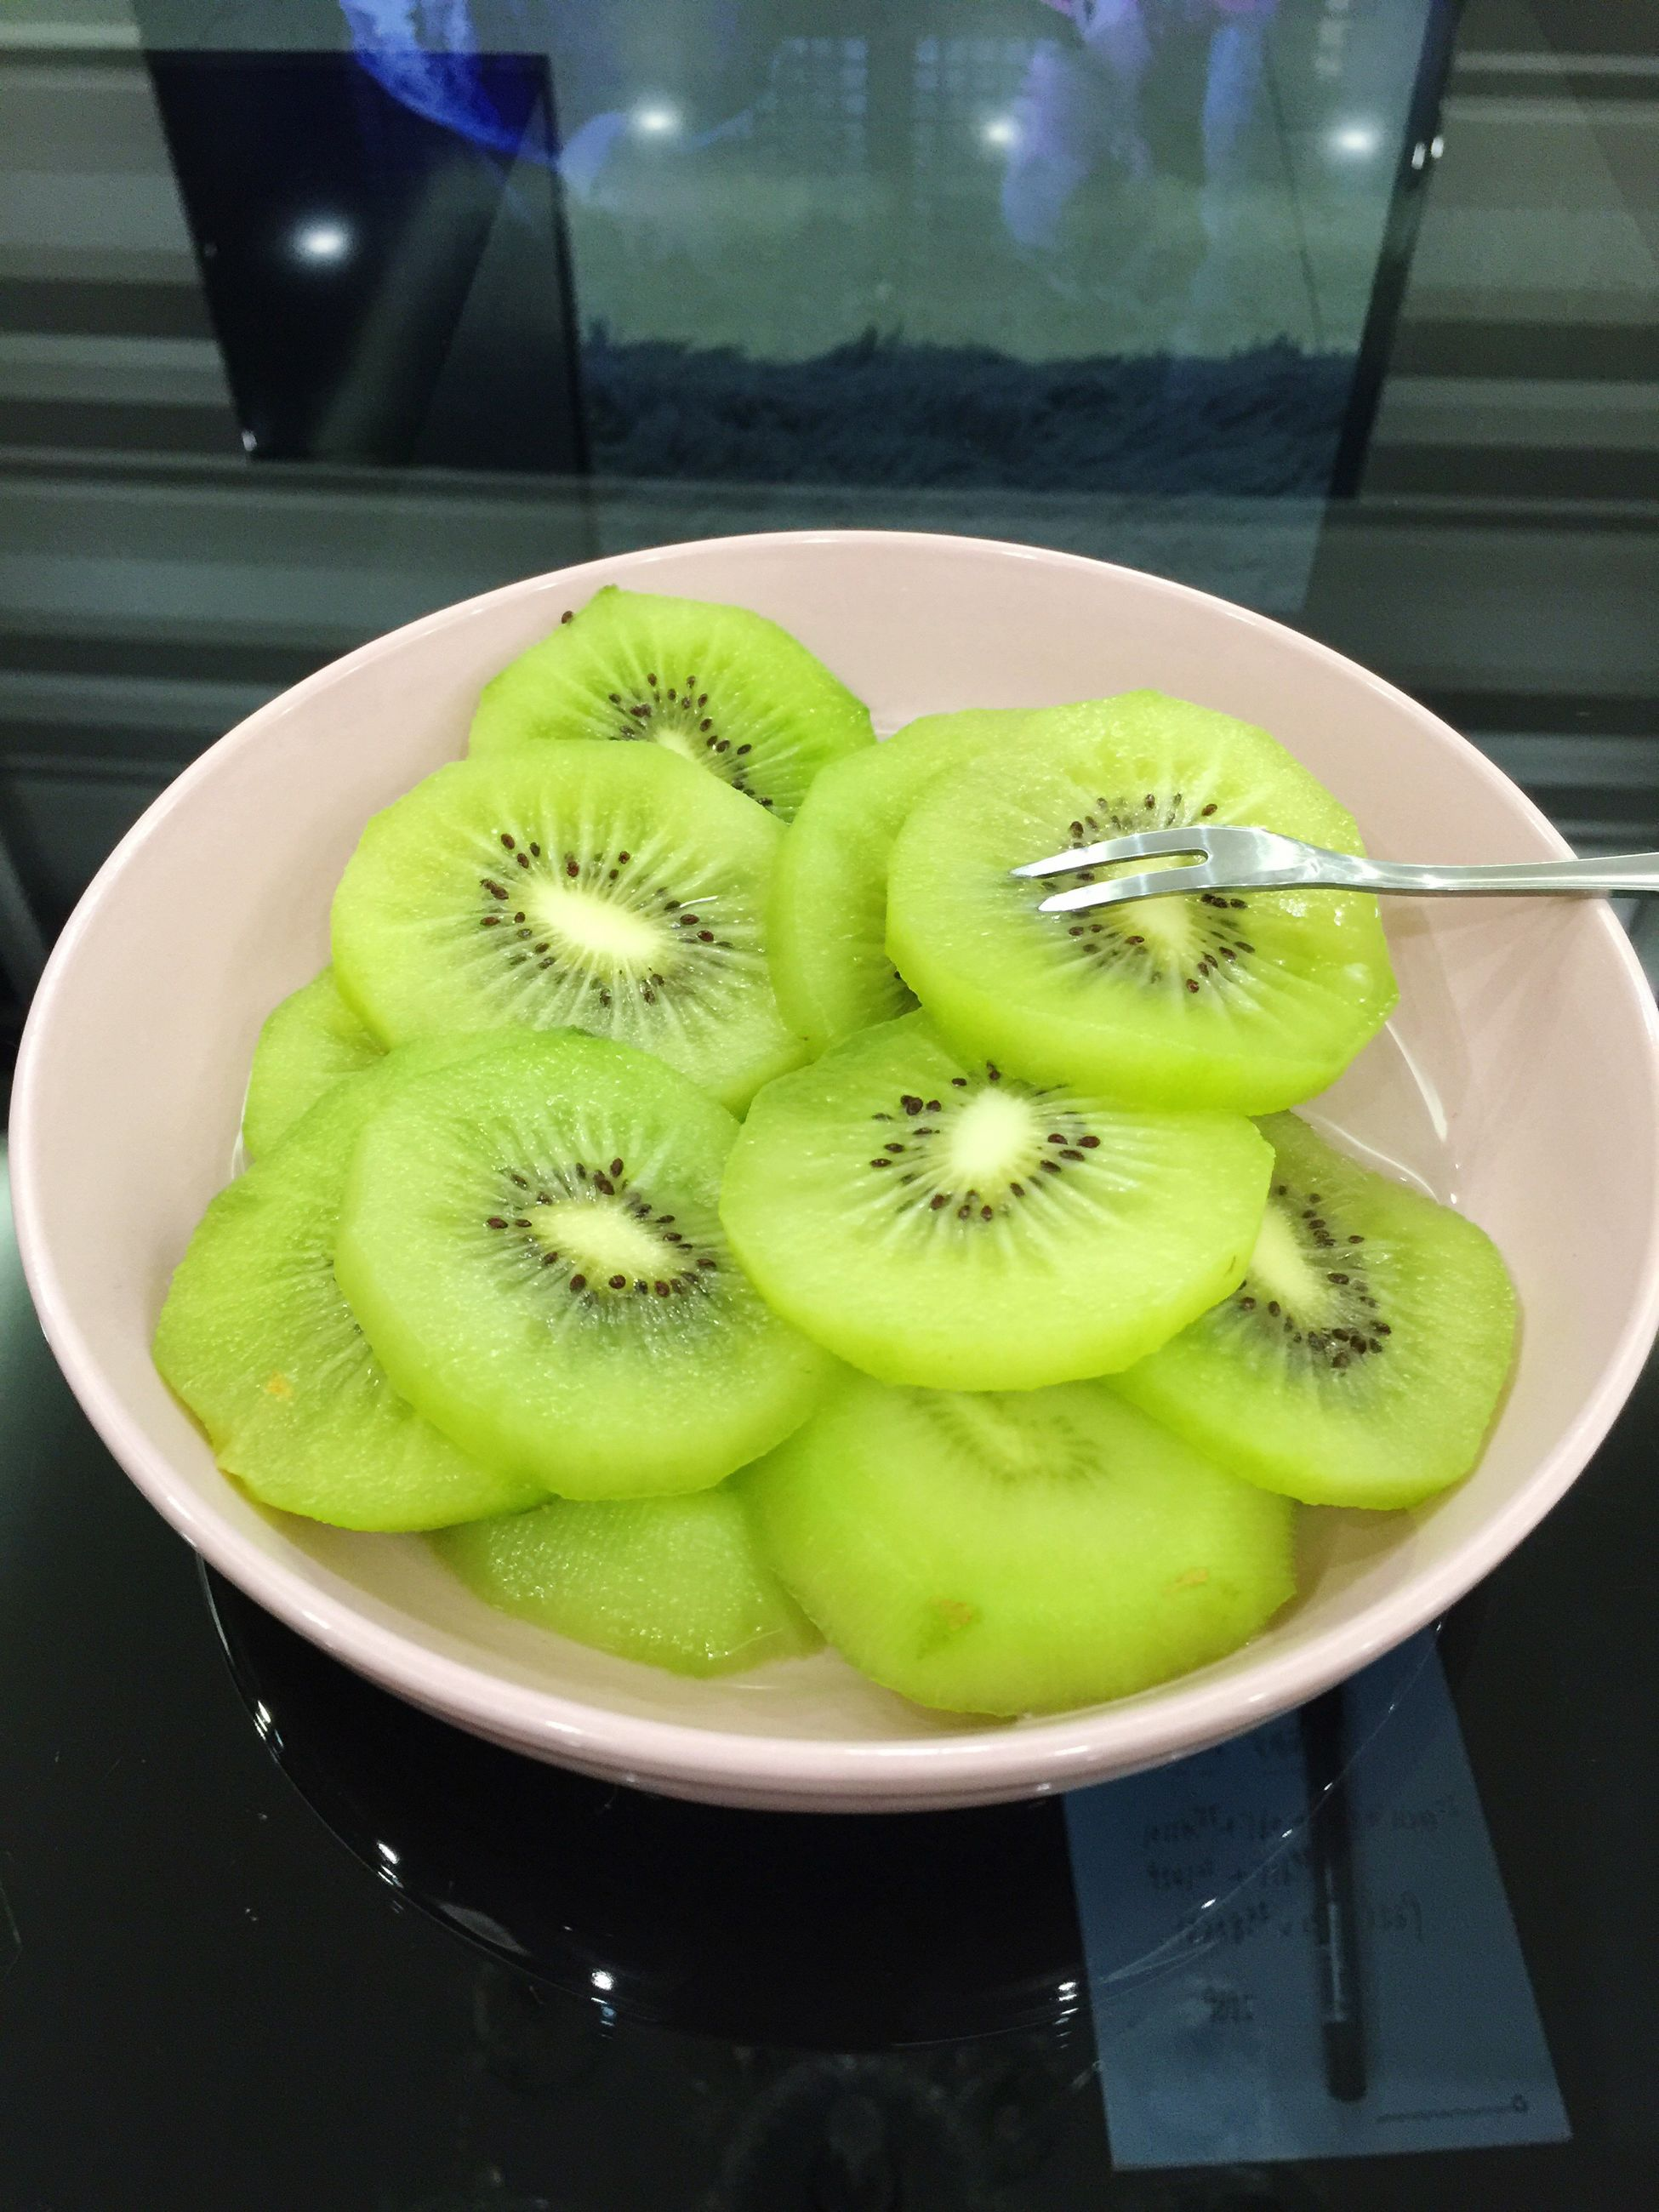 fruit, food and drink, freshness, slice, table, indoors, green color, healthy eating, food, plate, close-up, no people, kiwi - fruit, kiwi, day